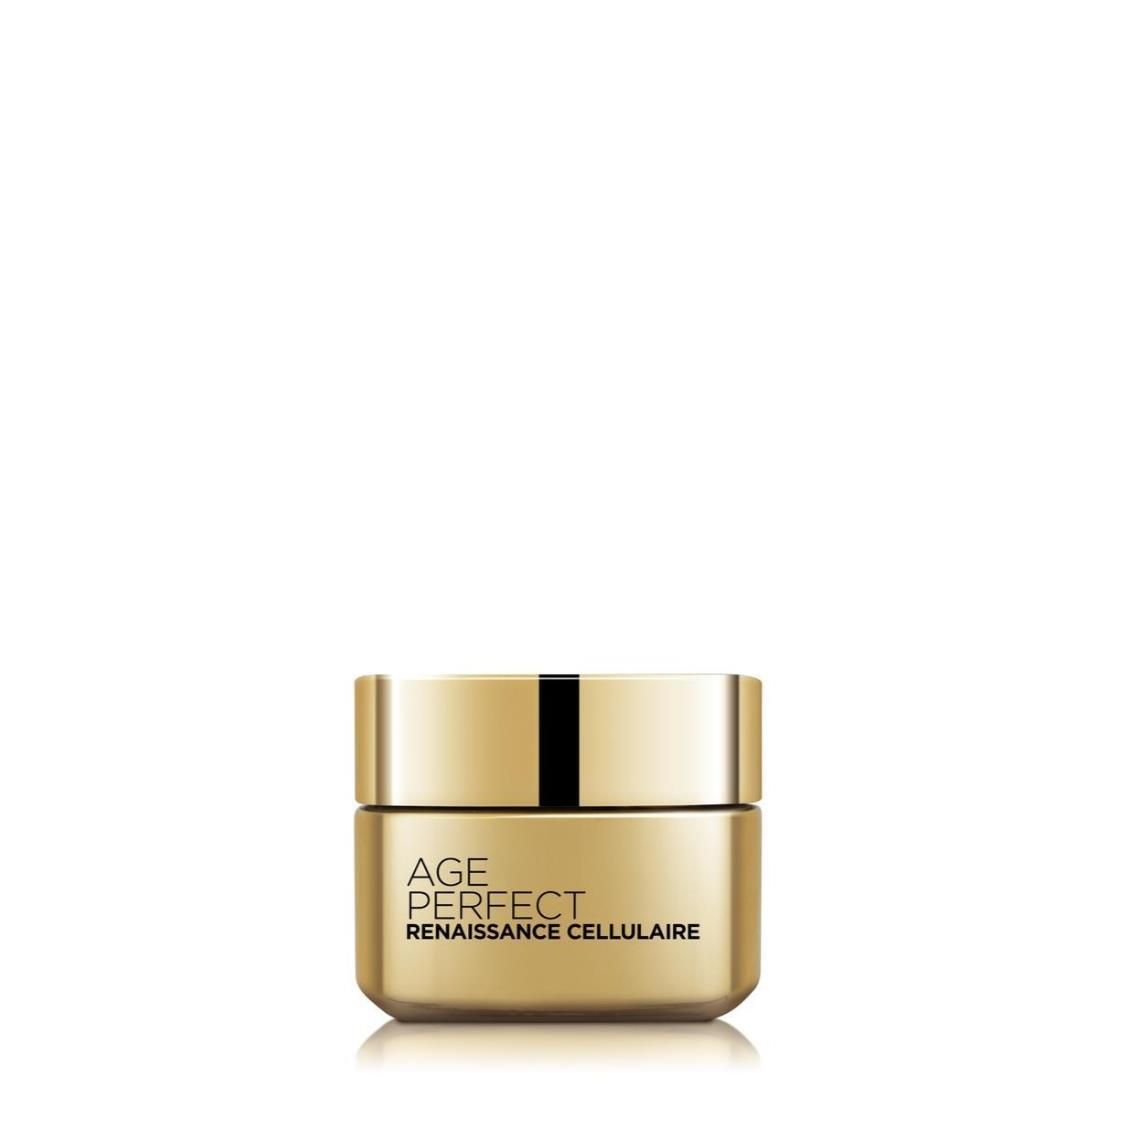 Age Perfect Renaissance Cellulaire Day Cream 50ml